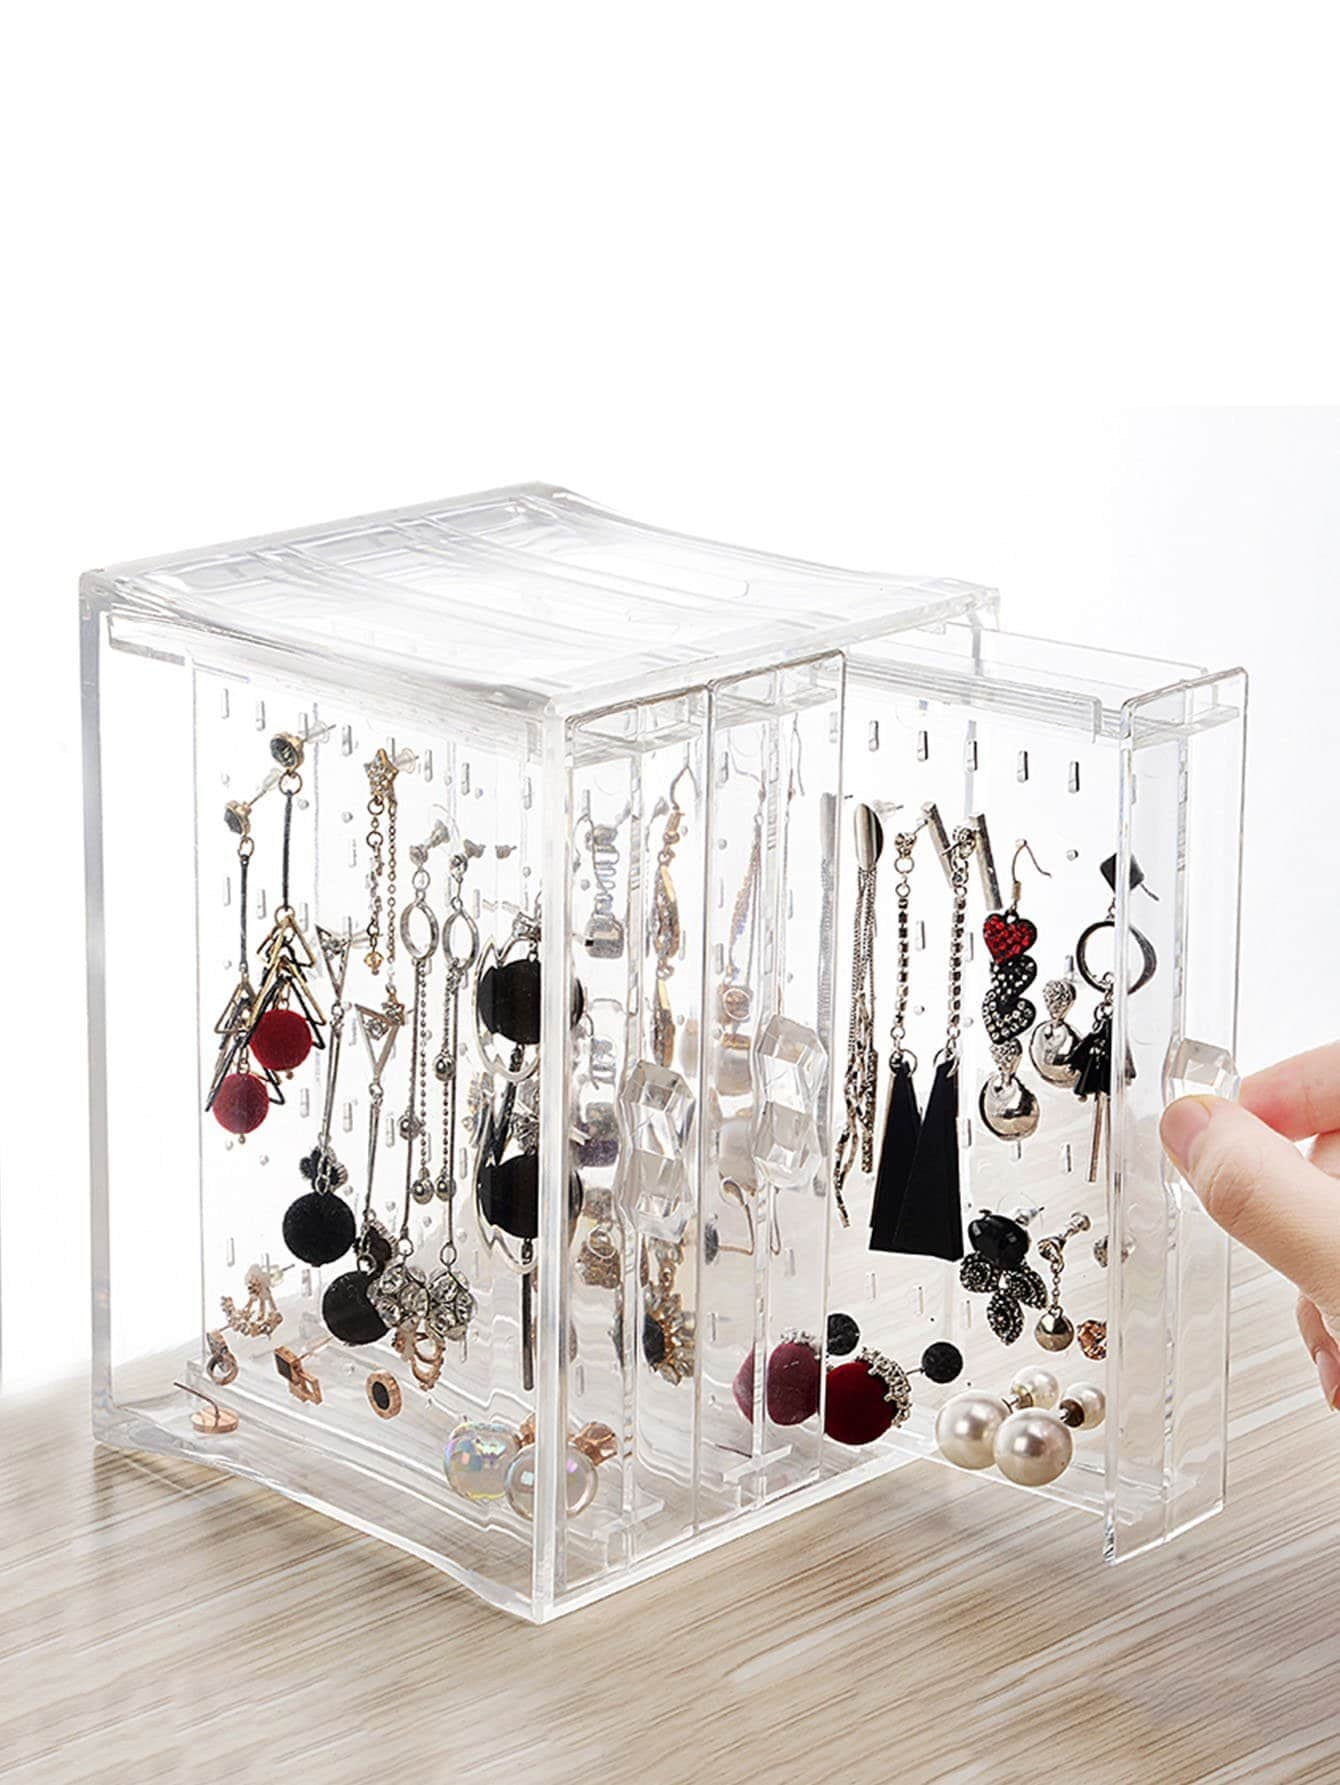 Clear Jewelry Storage Box Organize Your Home With These Cute Small Space Products Starting At 2 Popsugar Home Photo 78